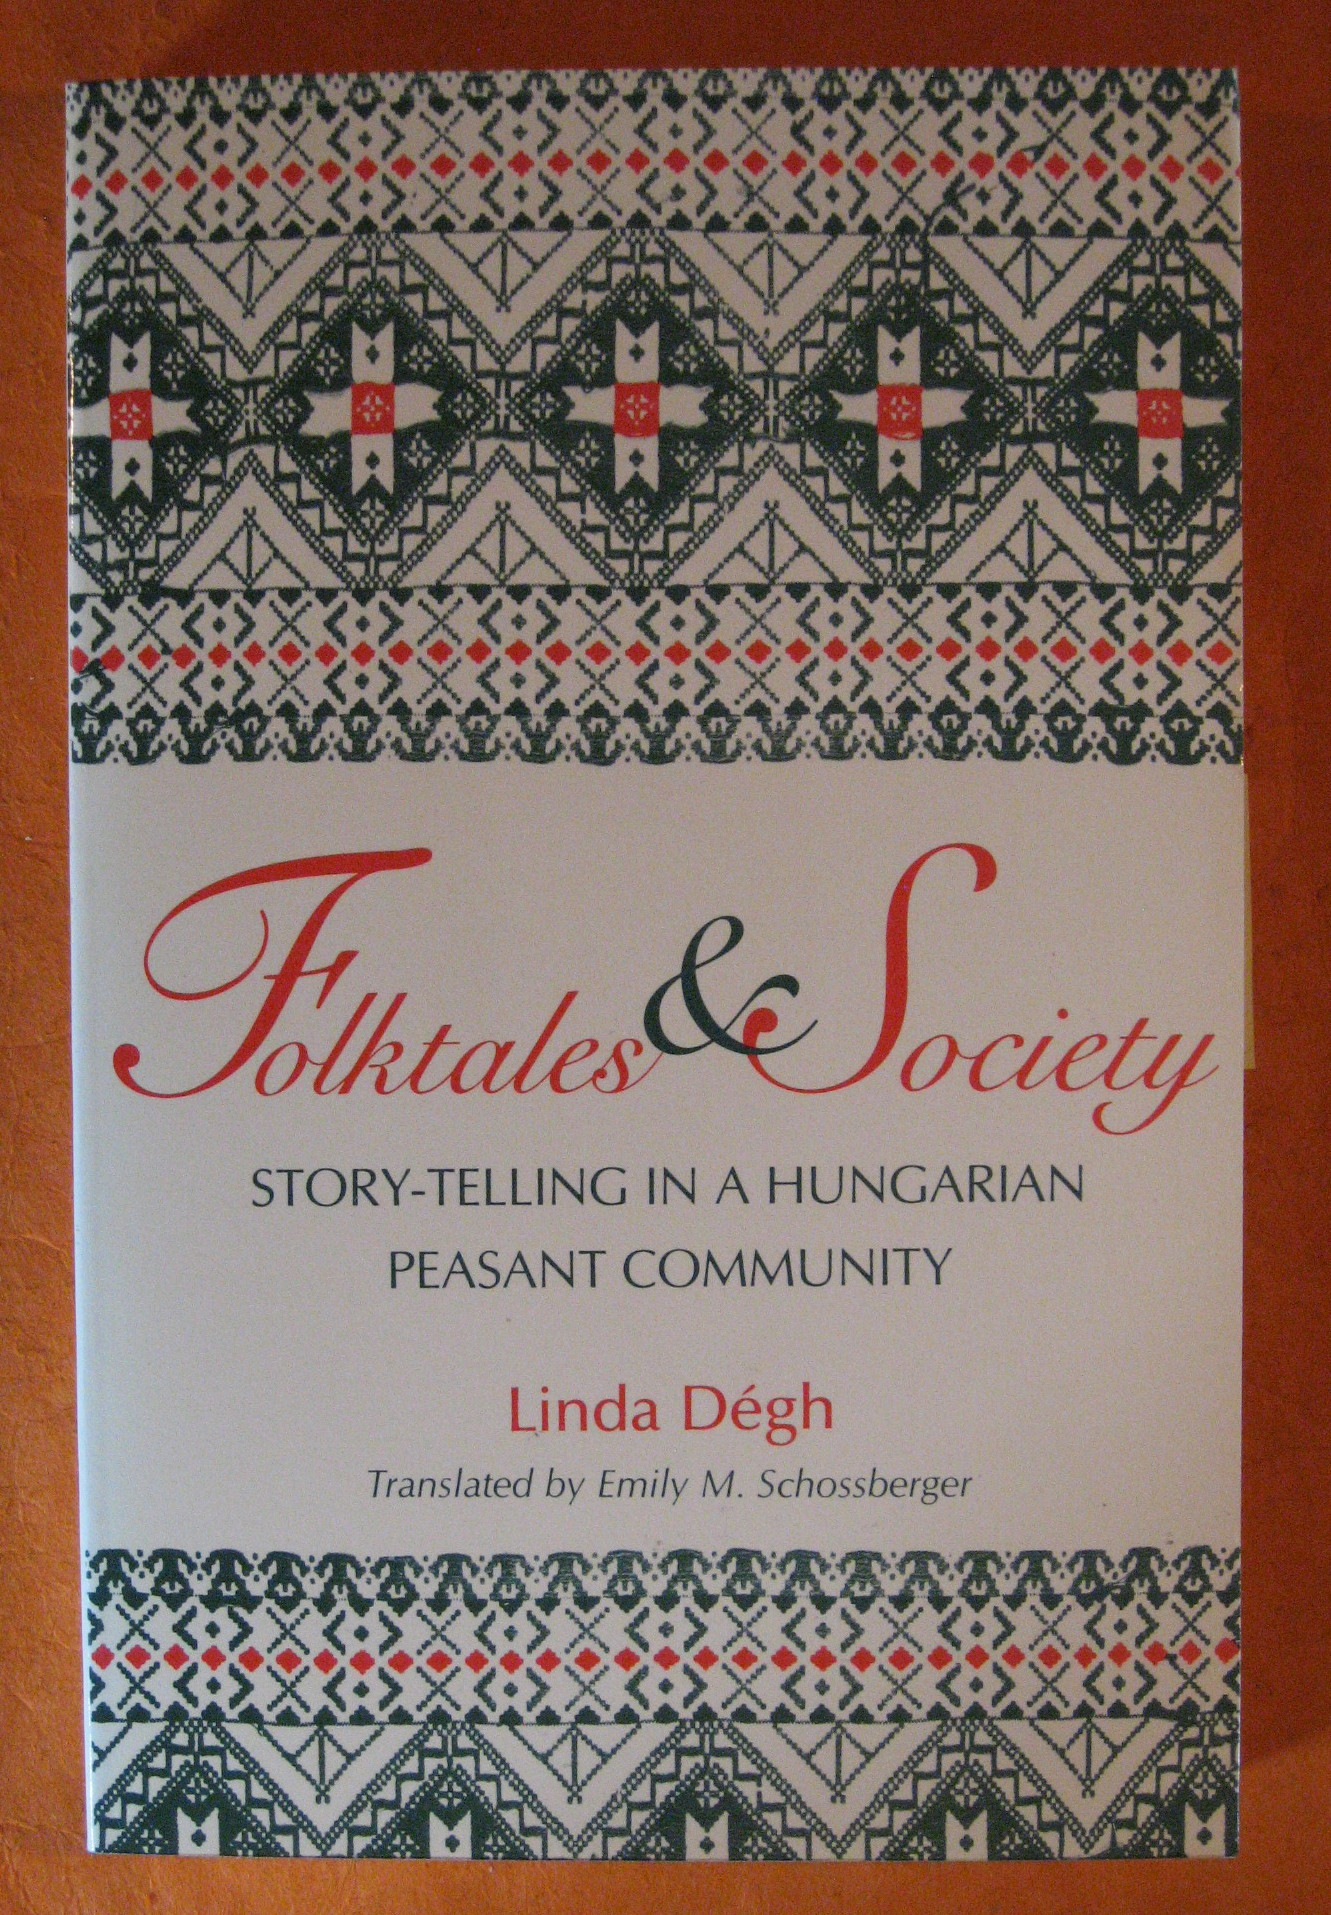 Folktales and Society: Story-Telling in a Hungarian Peasant Community (A Midland Book), Degh, Linda